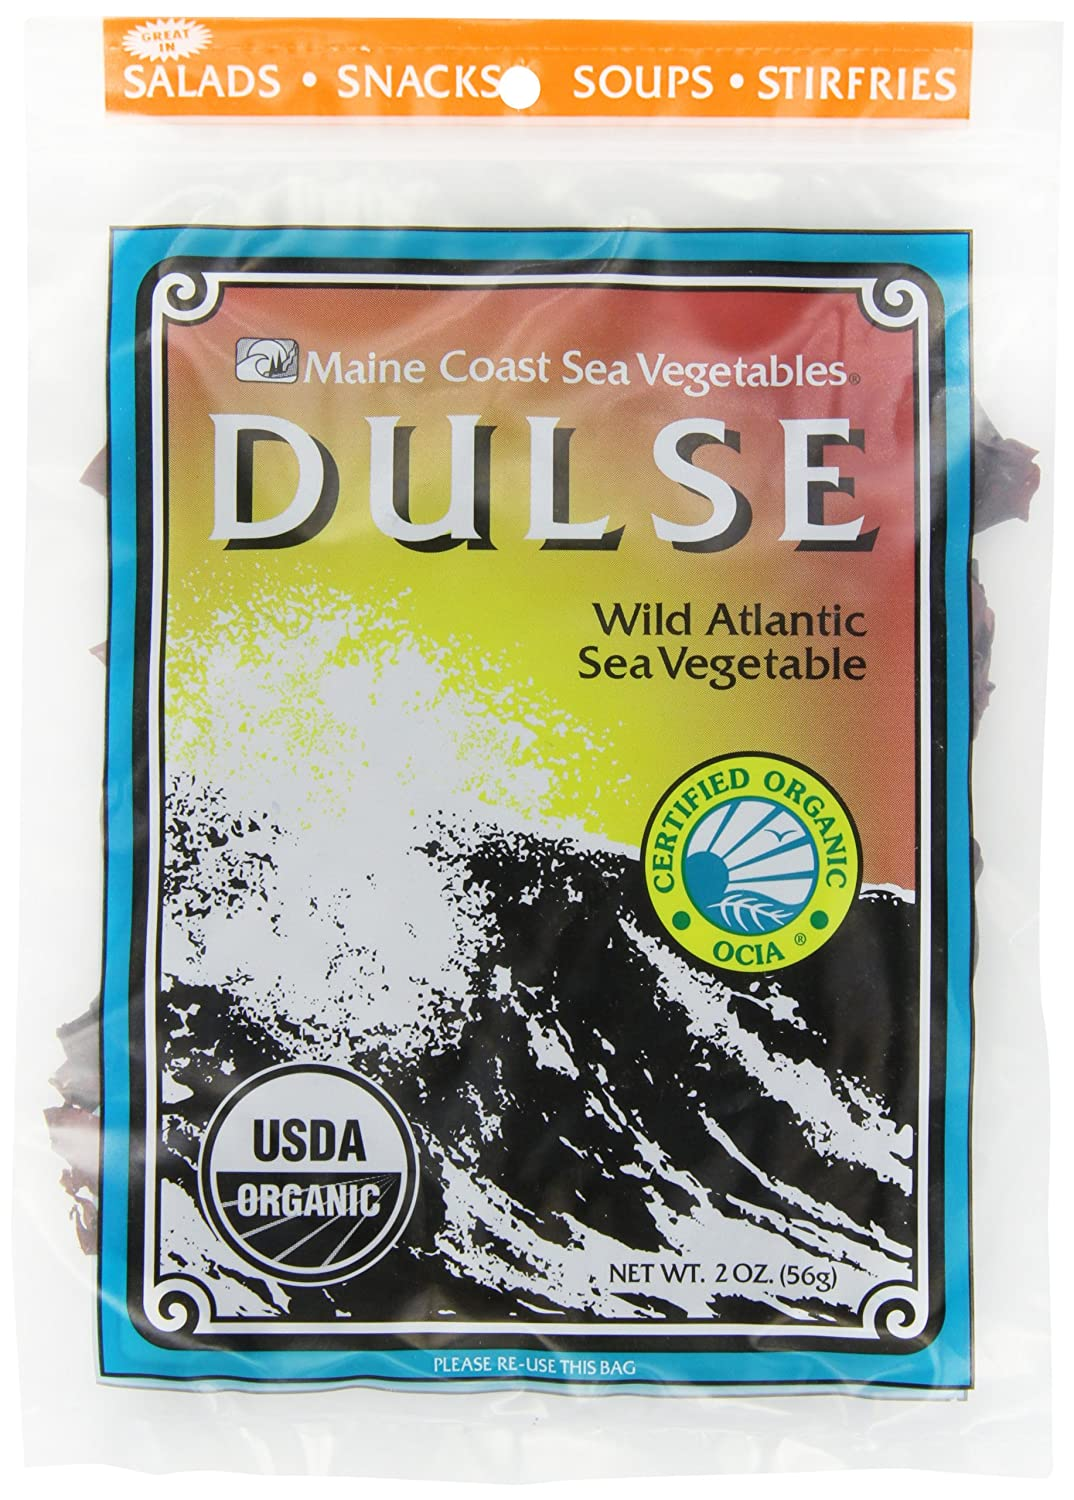 B001IZIBIY Maine Coast Sea Vegetables Dulse, Wild Atlantic Sea Vegetable, 2-Ounce Package (Pack of 6) 910gOzo2BdQL._SL1500_